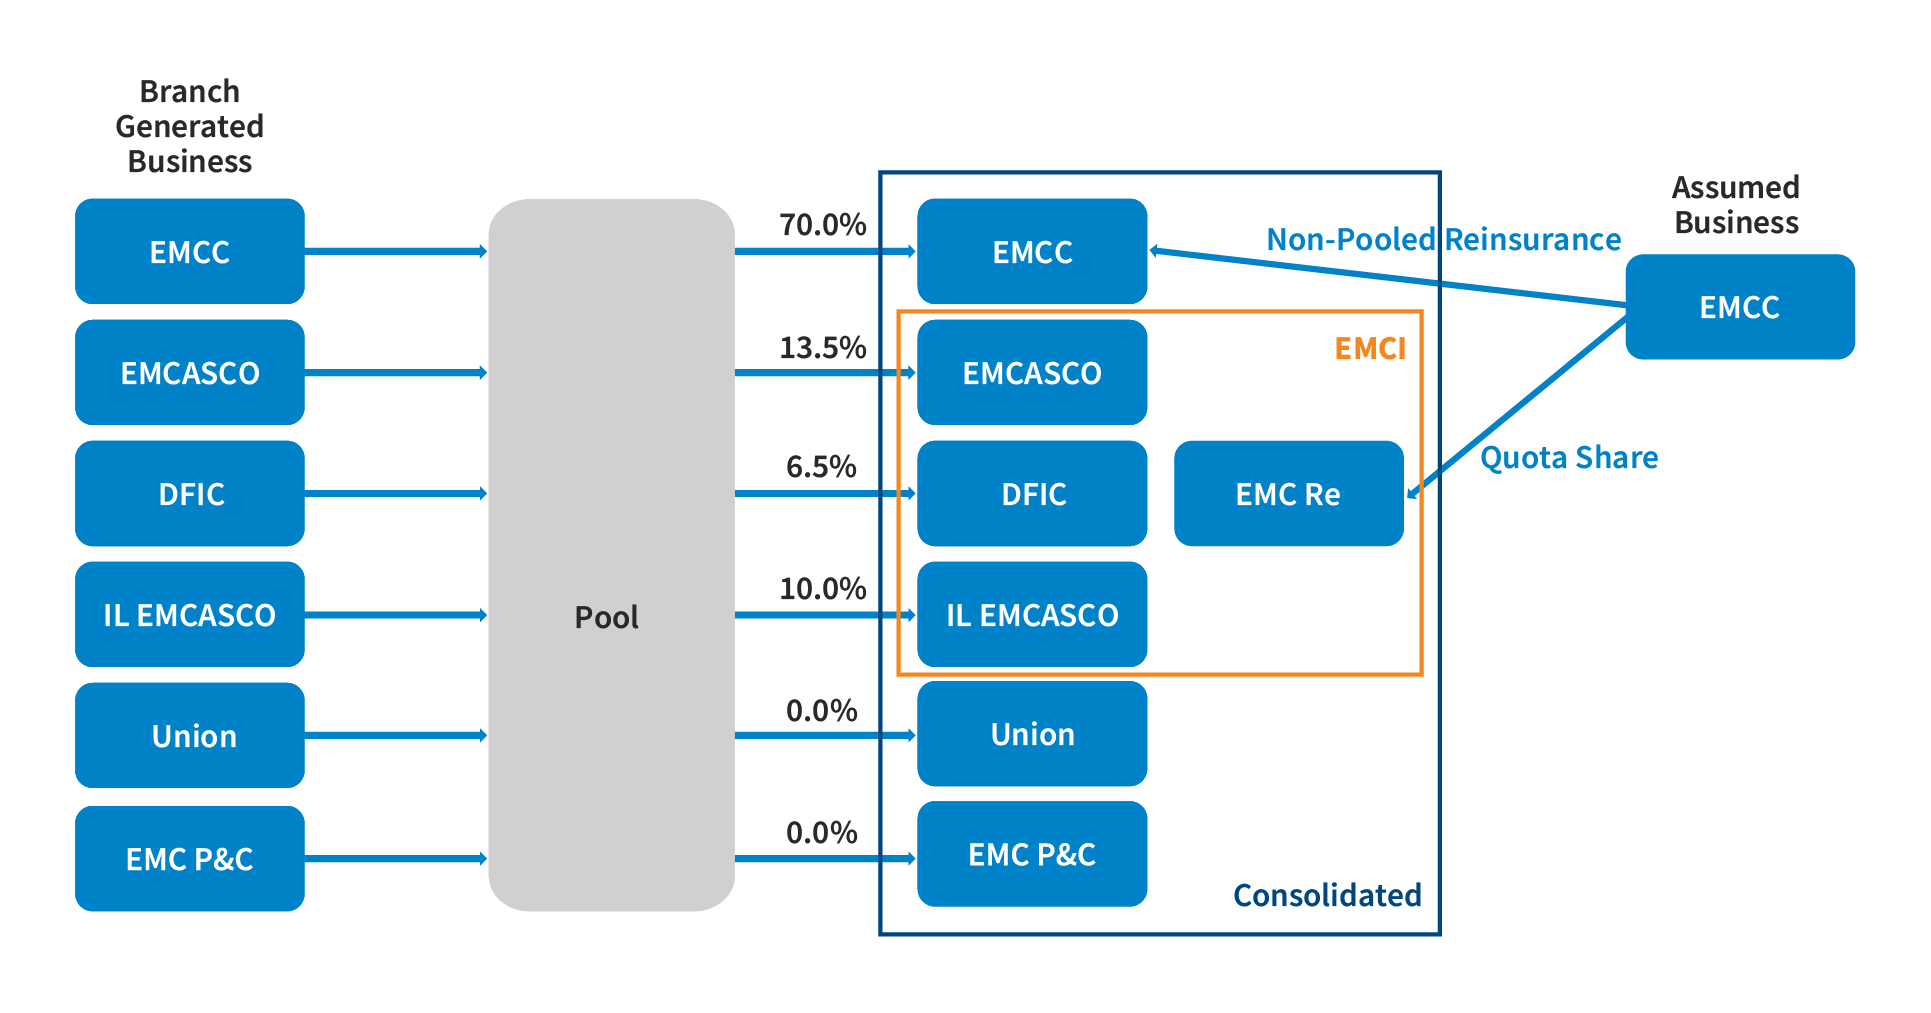 Reinsurance Pooling Agreement With EMCC – 30% Participation